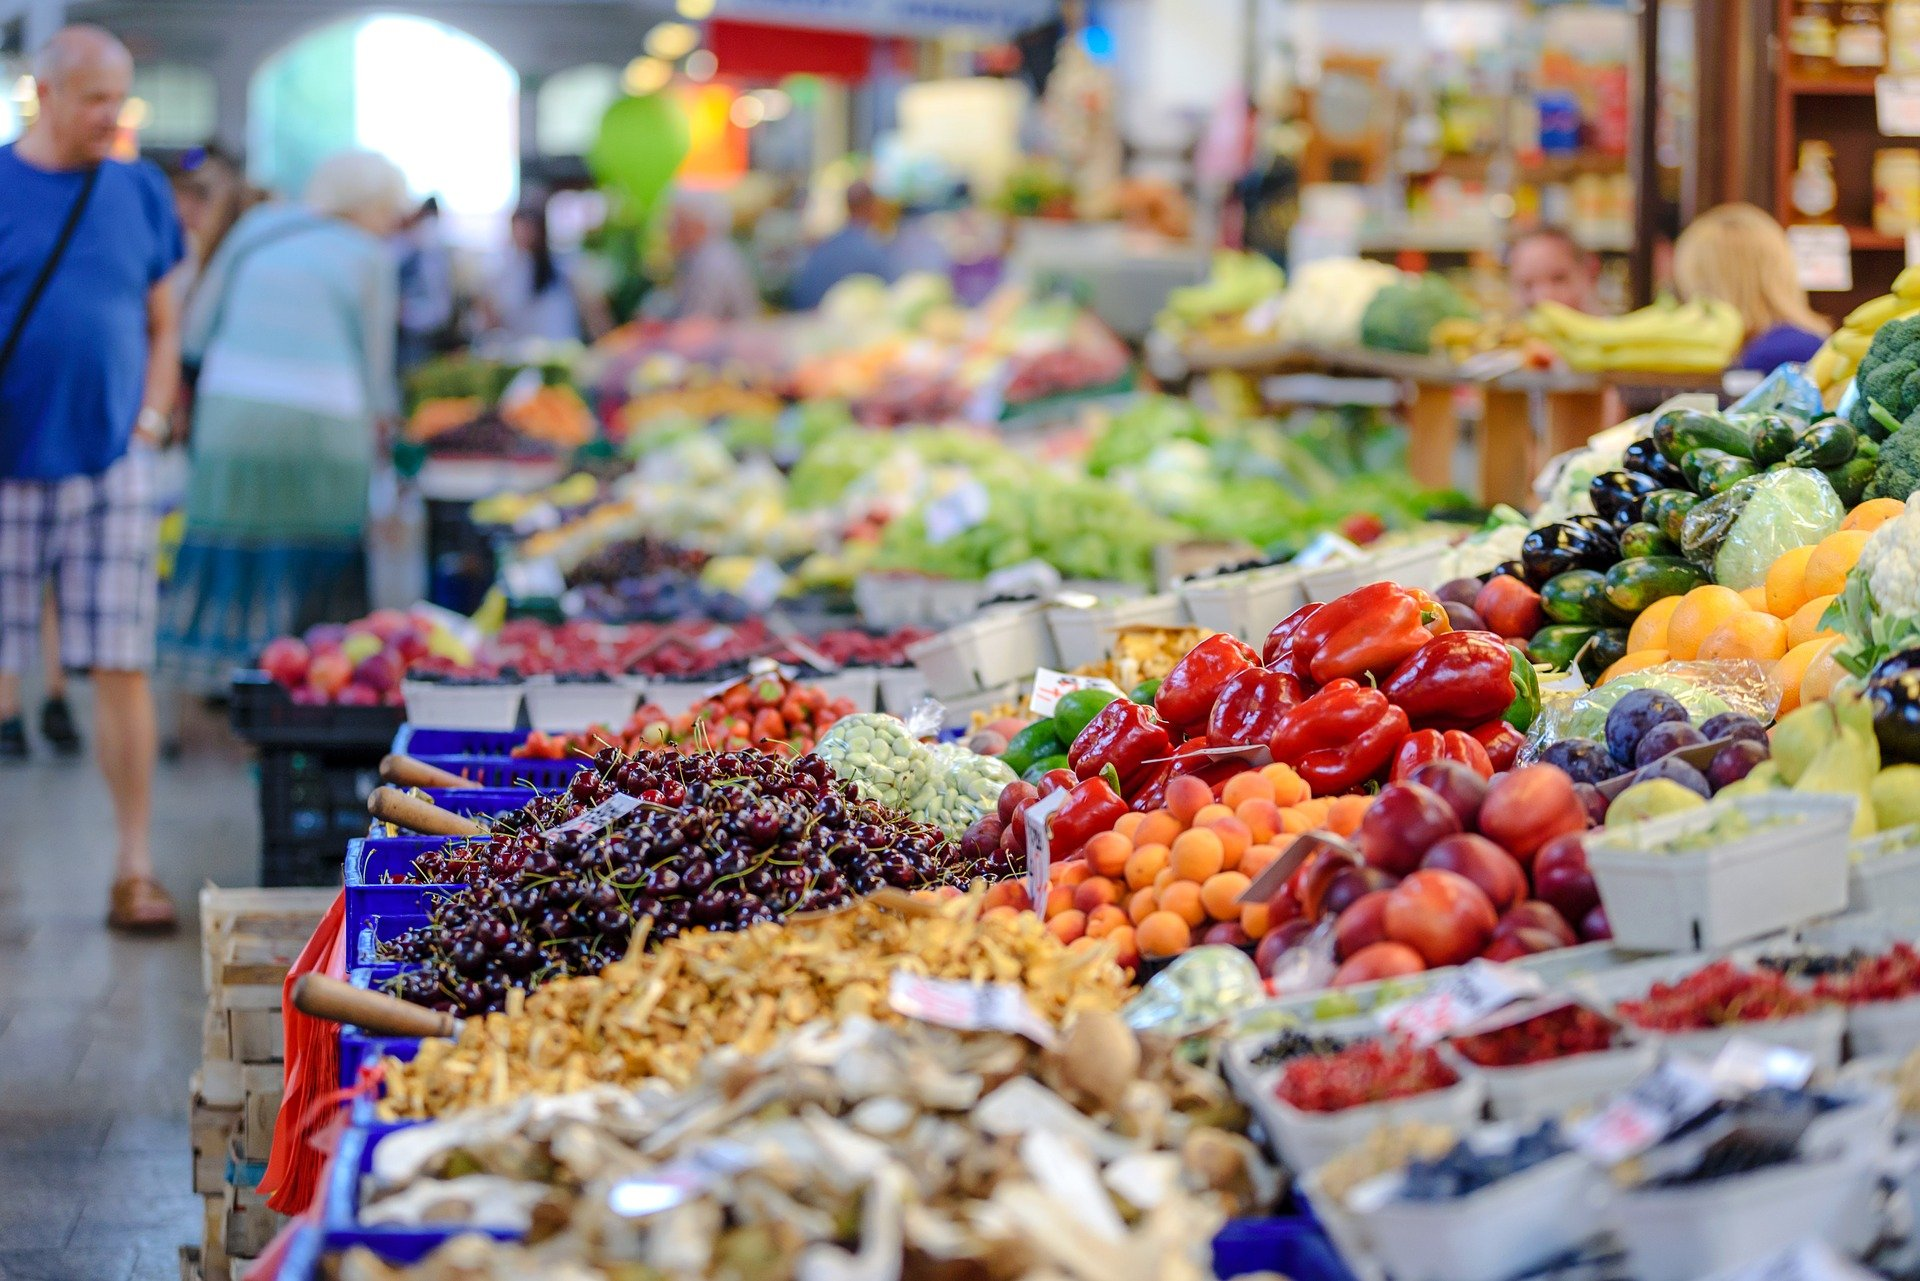 Will this young man lose his job at the grocery store?   Photo: Pixabay/Photo Mix